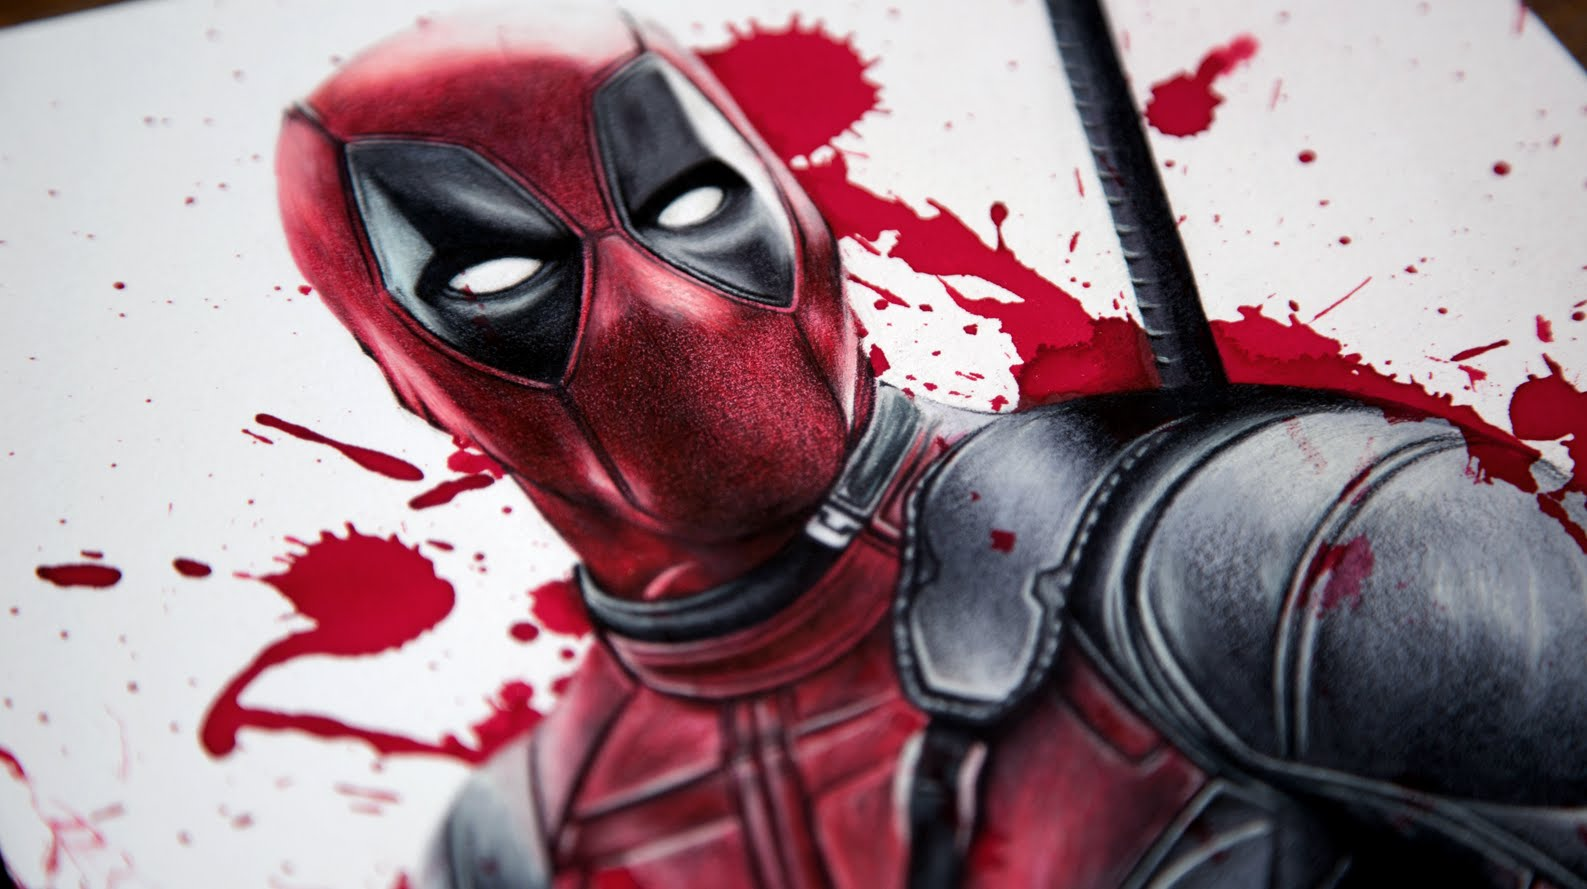 Deadpool Realistic Wallpapers Top Free Deadpool Realistic Backgrounds Wallpaperaccess